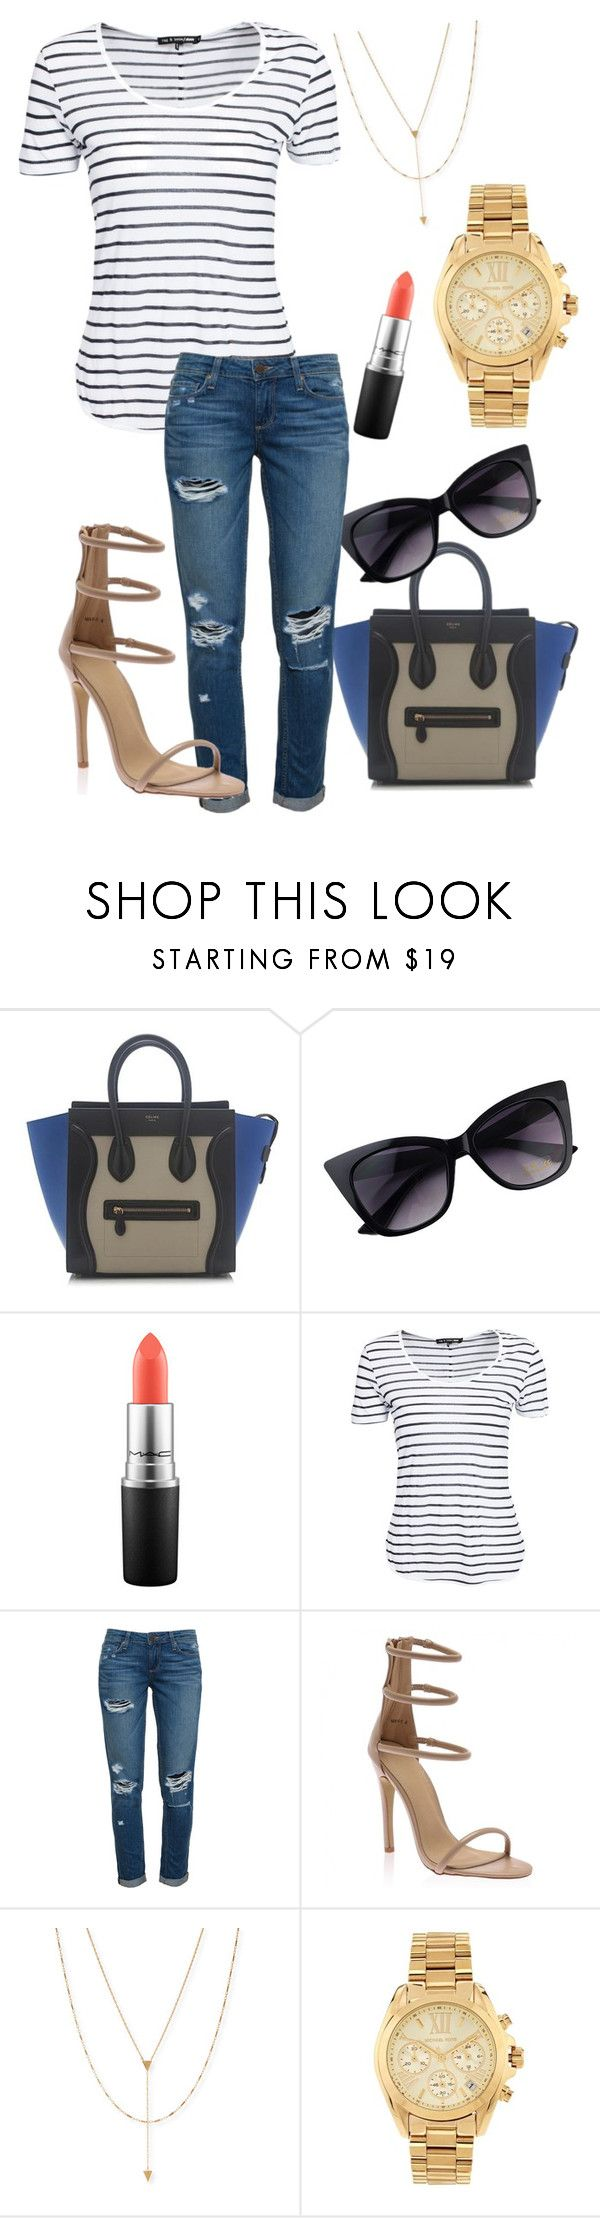 """shopping trip!"" by honey-coco ❤ liked on Polyvore featuring CÉLINE, MAC Cosmetics, rag & bone, Paige Denim, Jennifer Zeuner and Michael Kors"